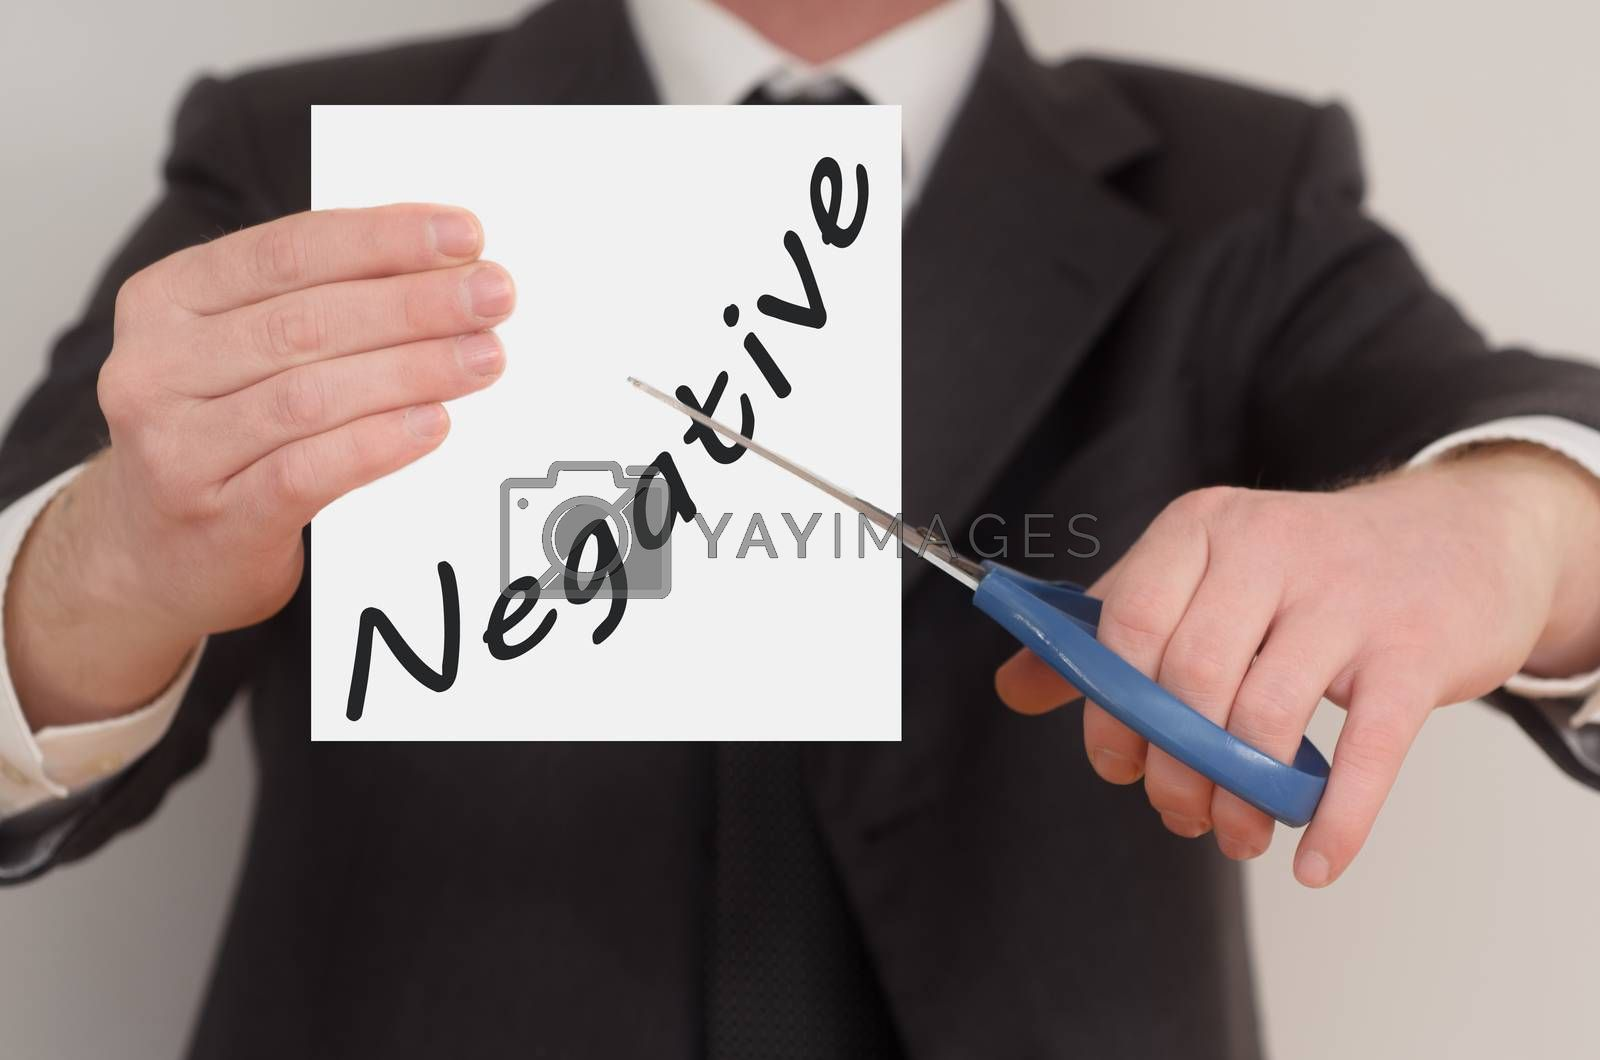 Negative, man in suit cutting text on paper with scissors